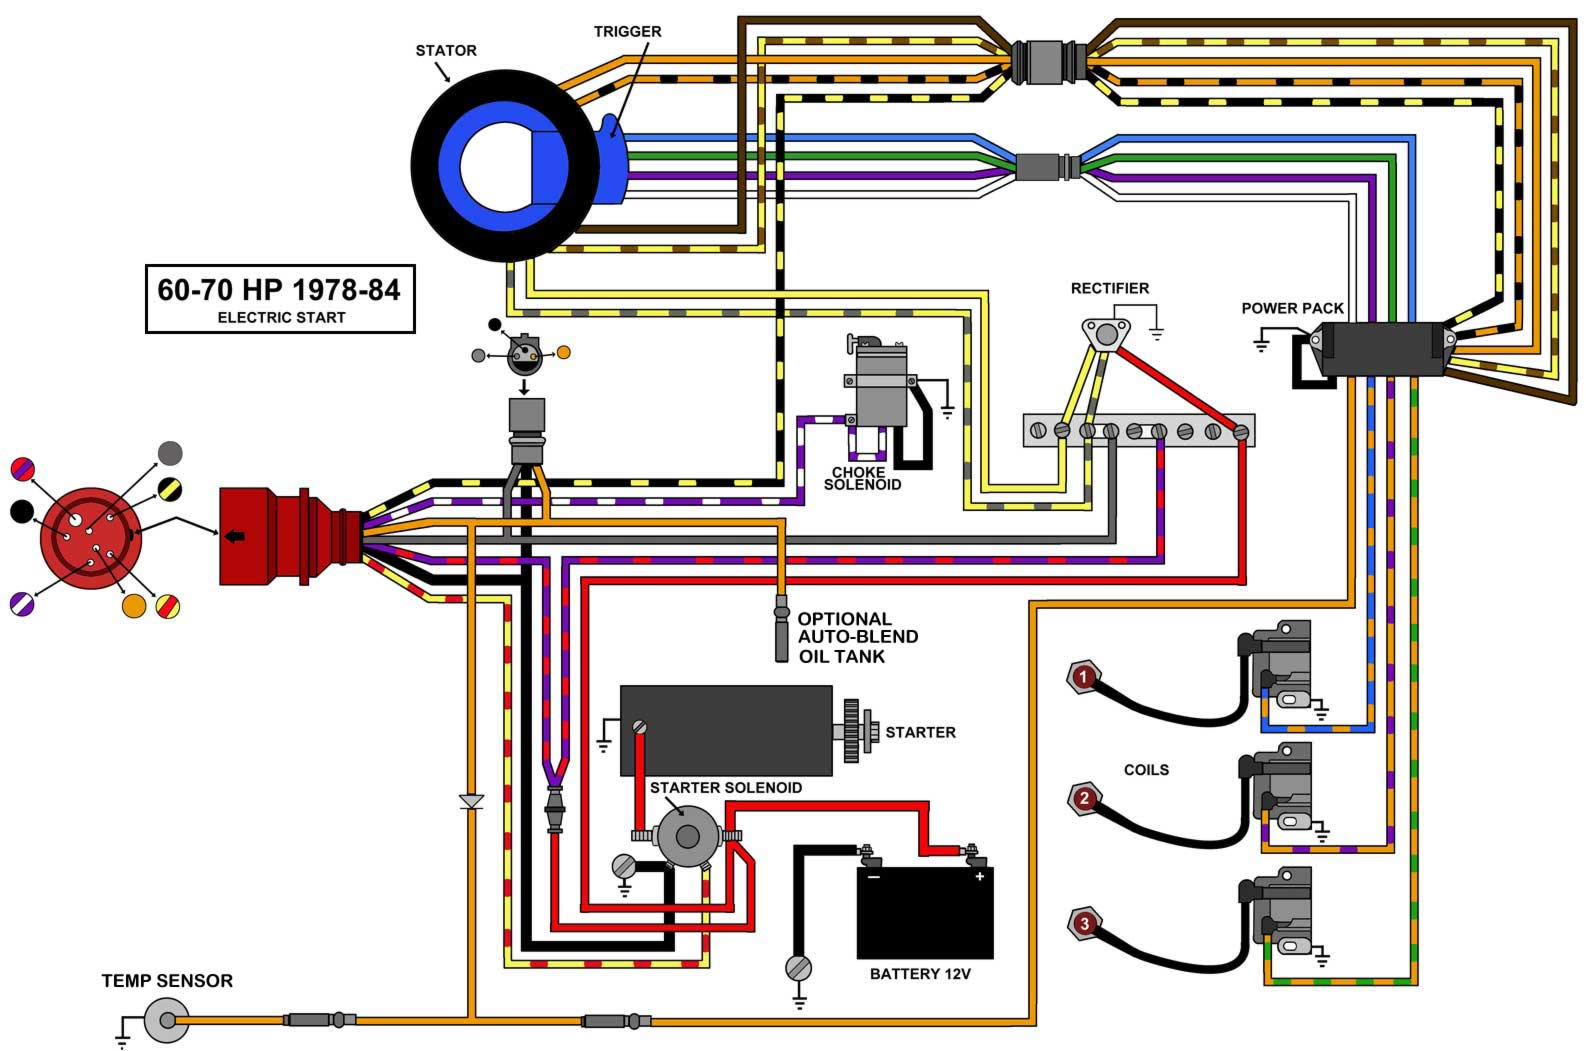 75 hp mercury control box wiring diagram html with Jowireindex on JOwireindex furthermore Omc Remote Control Parts Diagram in addition 115hp Mercury Outboard Engine Diagram Html together with Bayliner Capri Wiring Diagram furthermore Fixforcewiring.